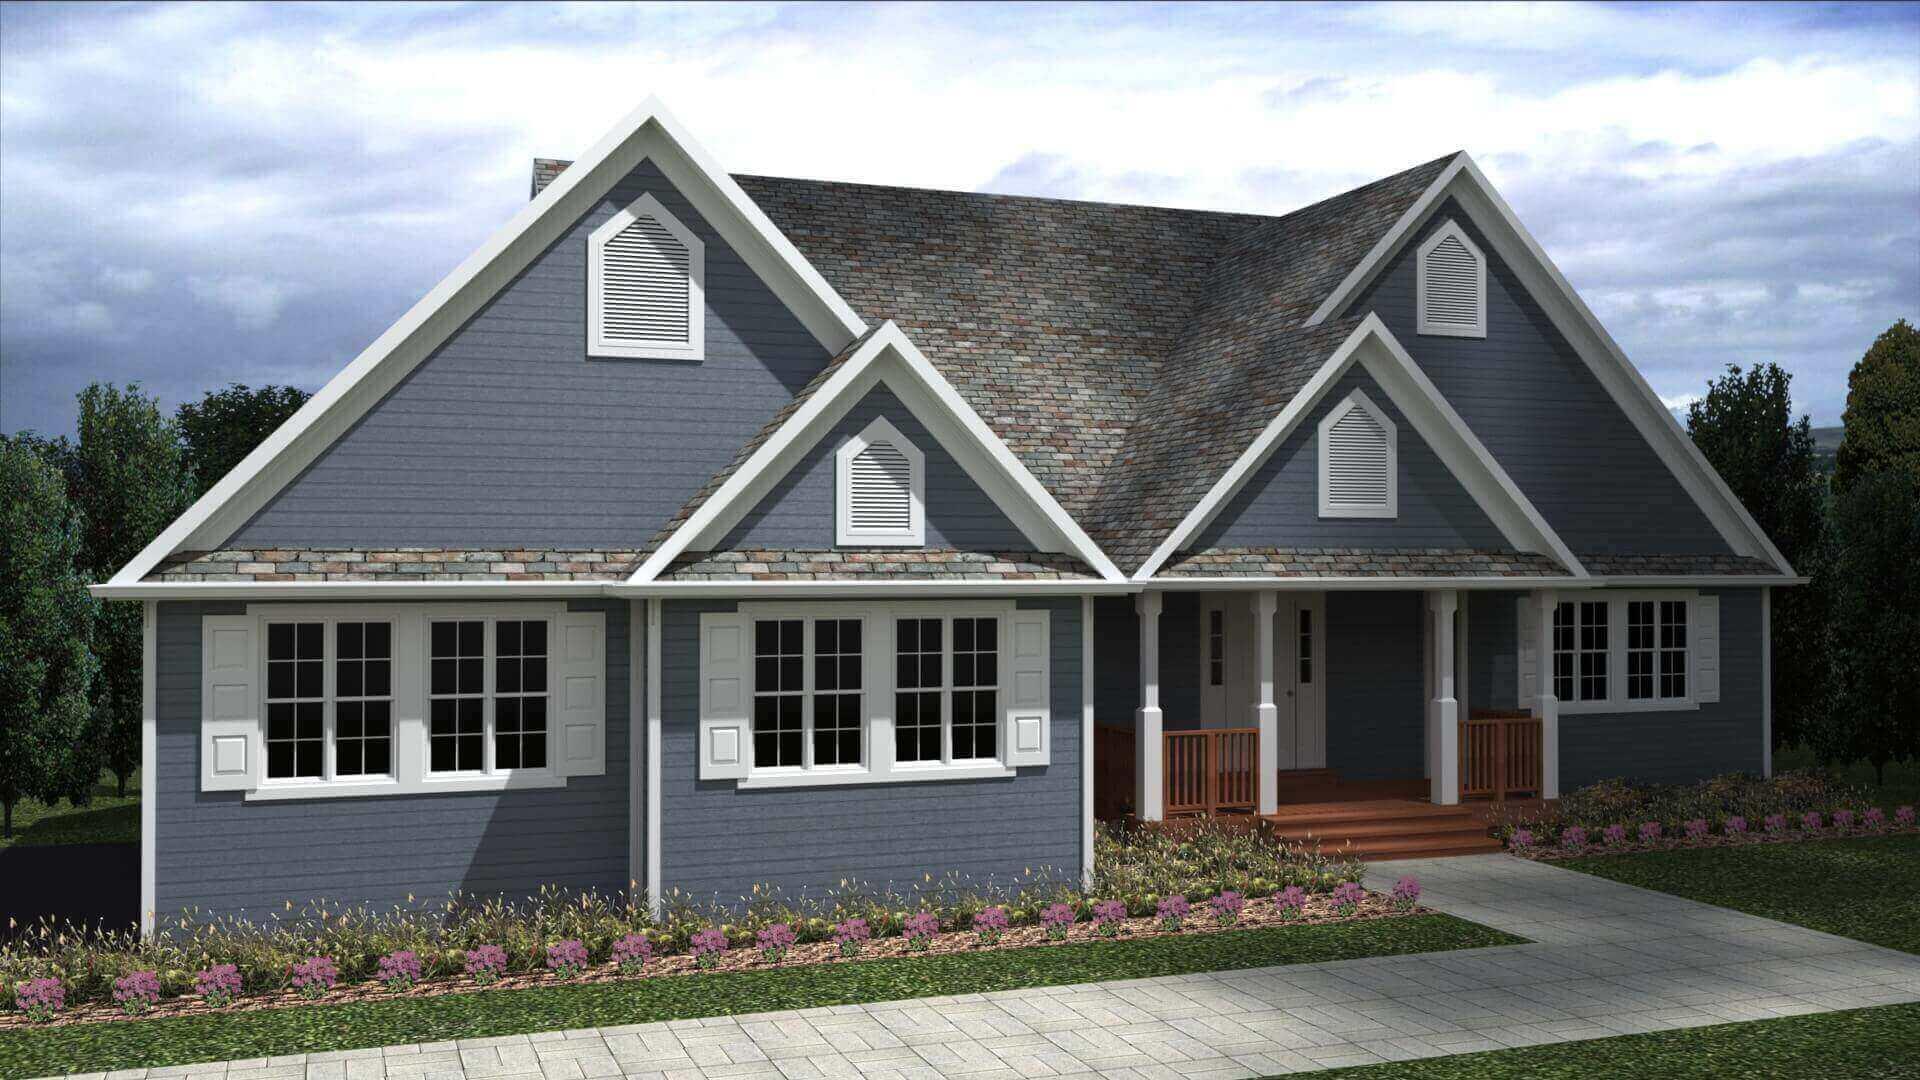 2618 sq.ft. timber mart house 3 bed 4 bath exterior render